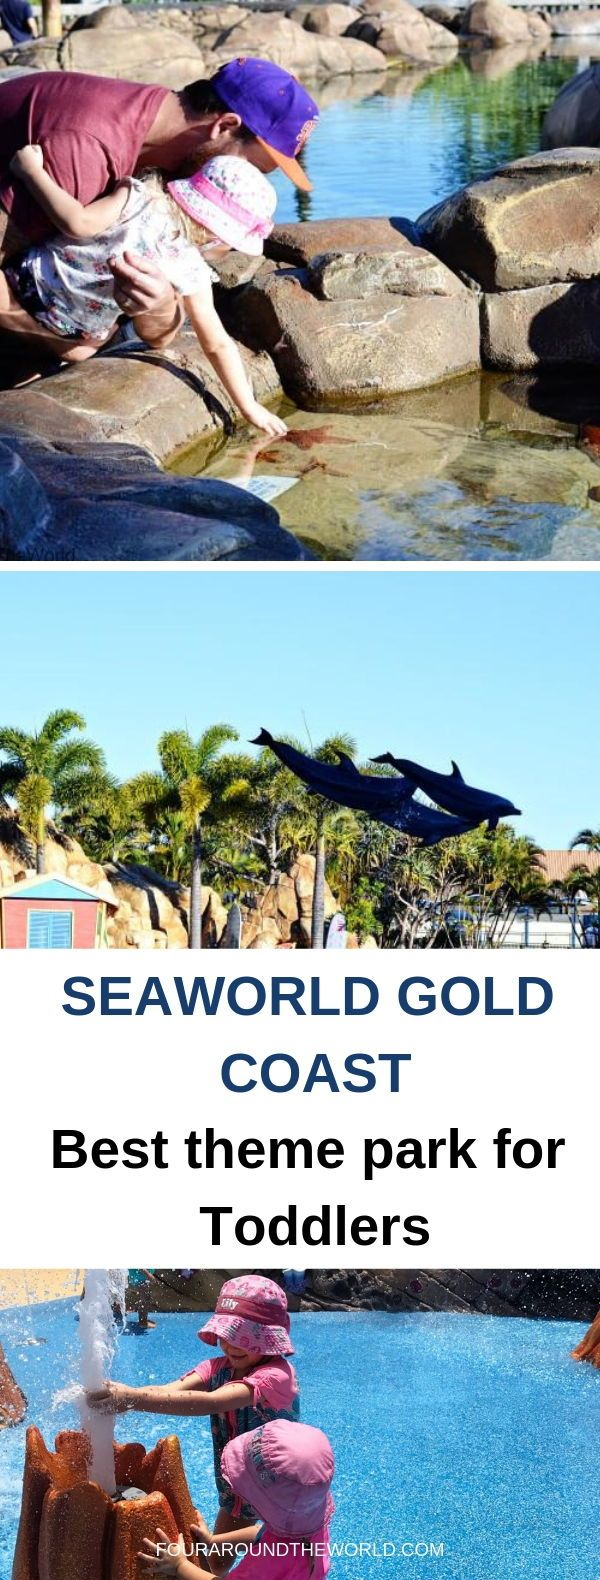 Seaworld Gold Coast The Best Theme Park For Toddlers Family Travel Usa Sea World Gold Coast Theme Parks